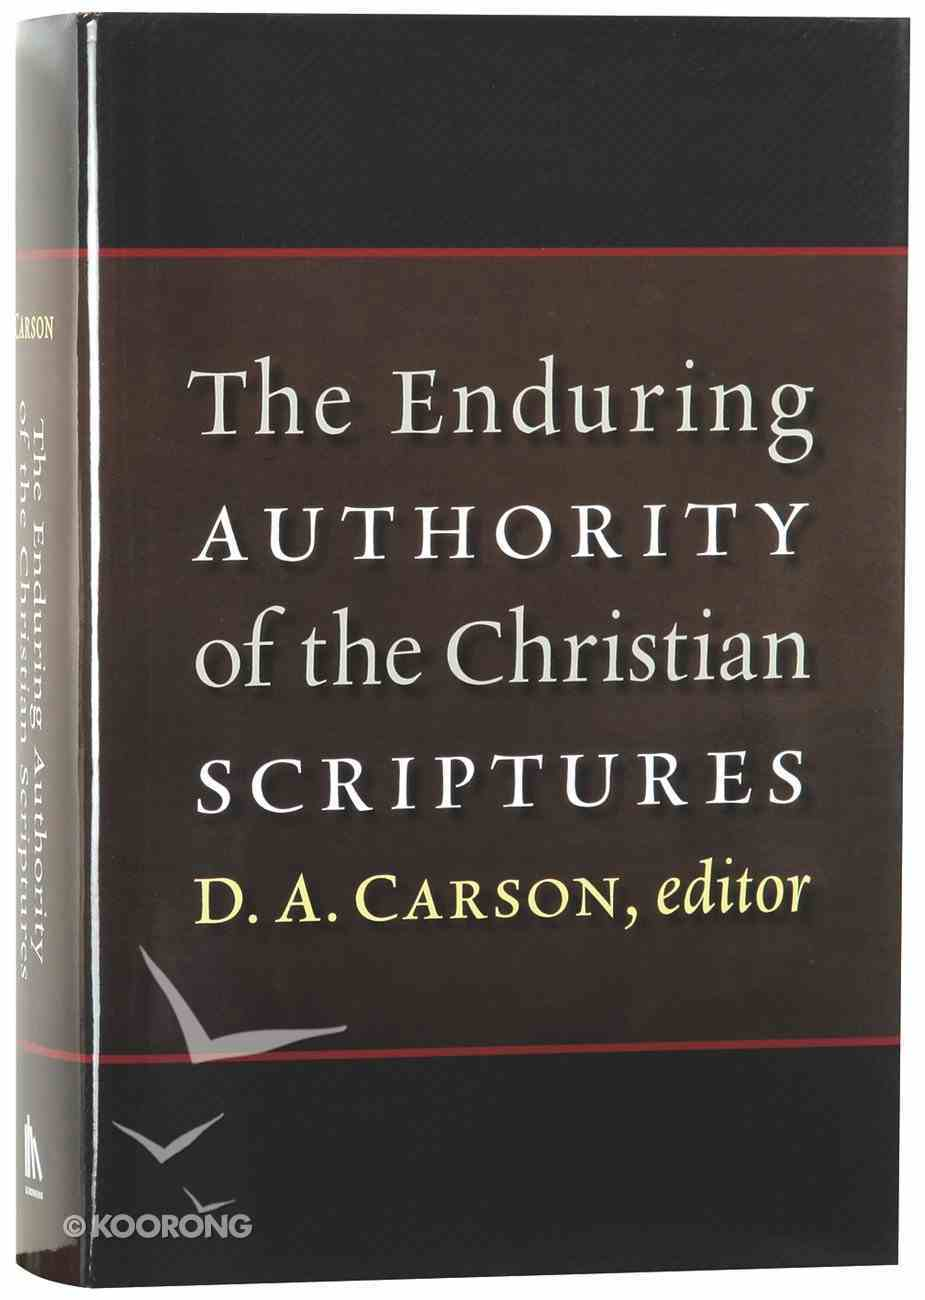 The Enduring Authority of the Christian Scriptures Hardback